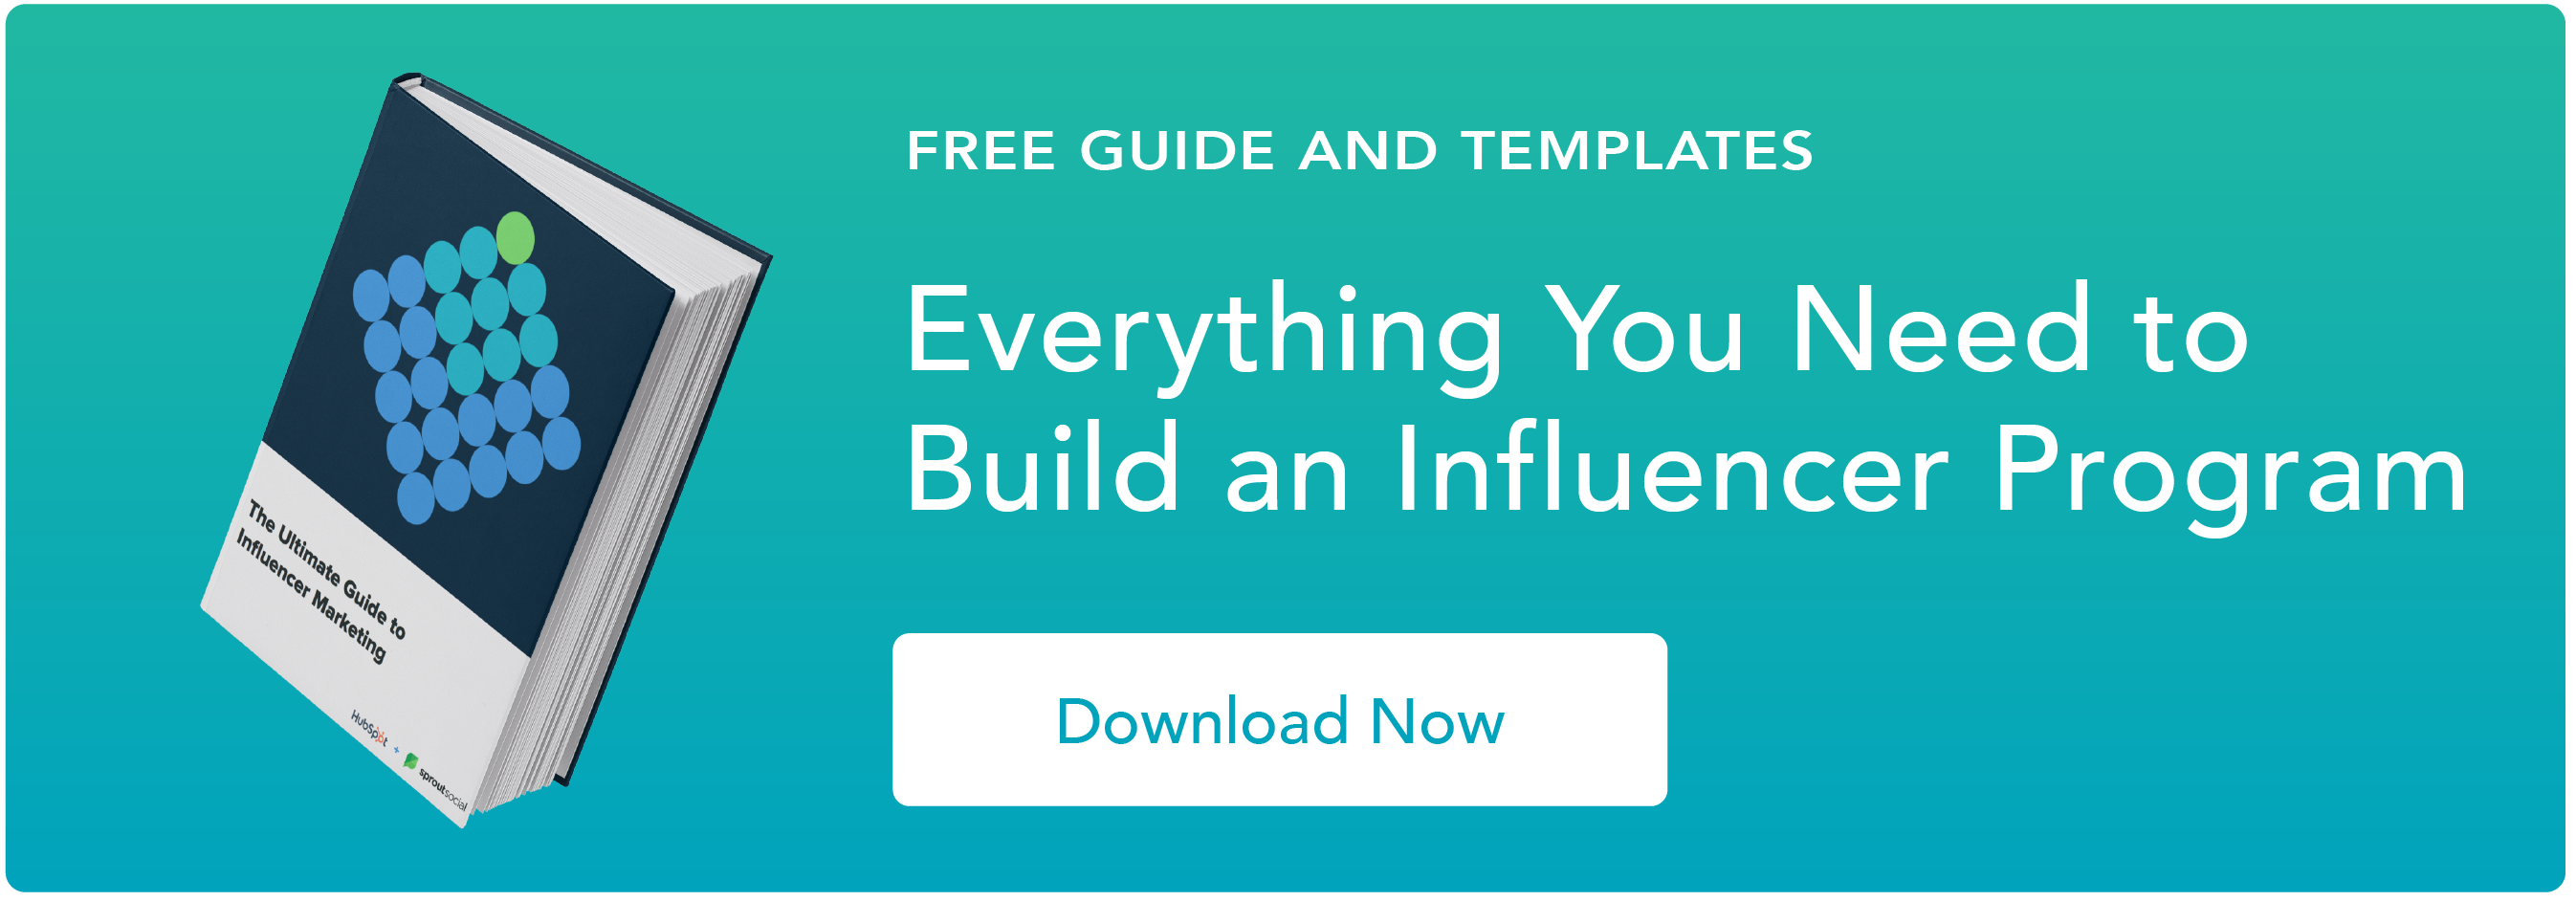 13 Influencer Marketing Campaigns to Inspire and Get You Started